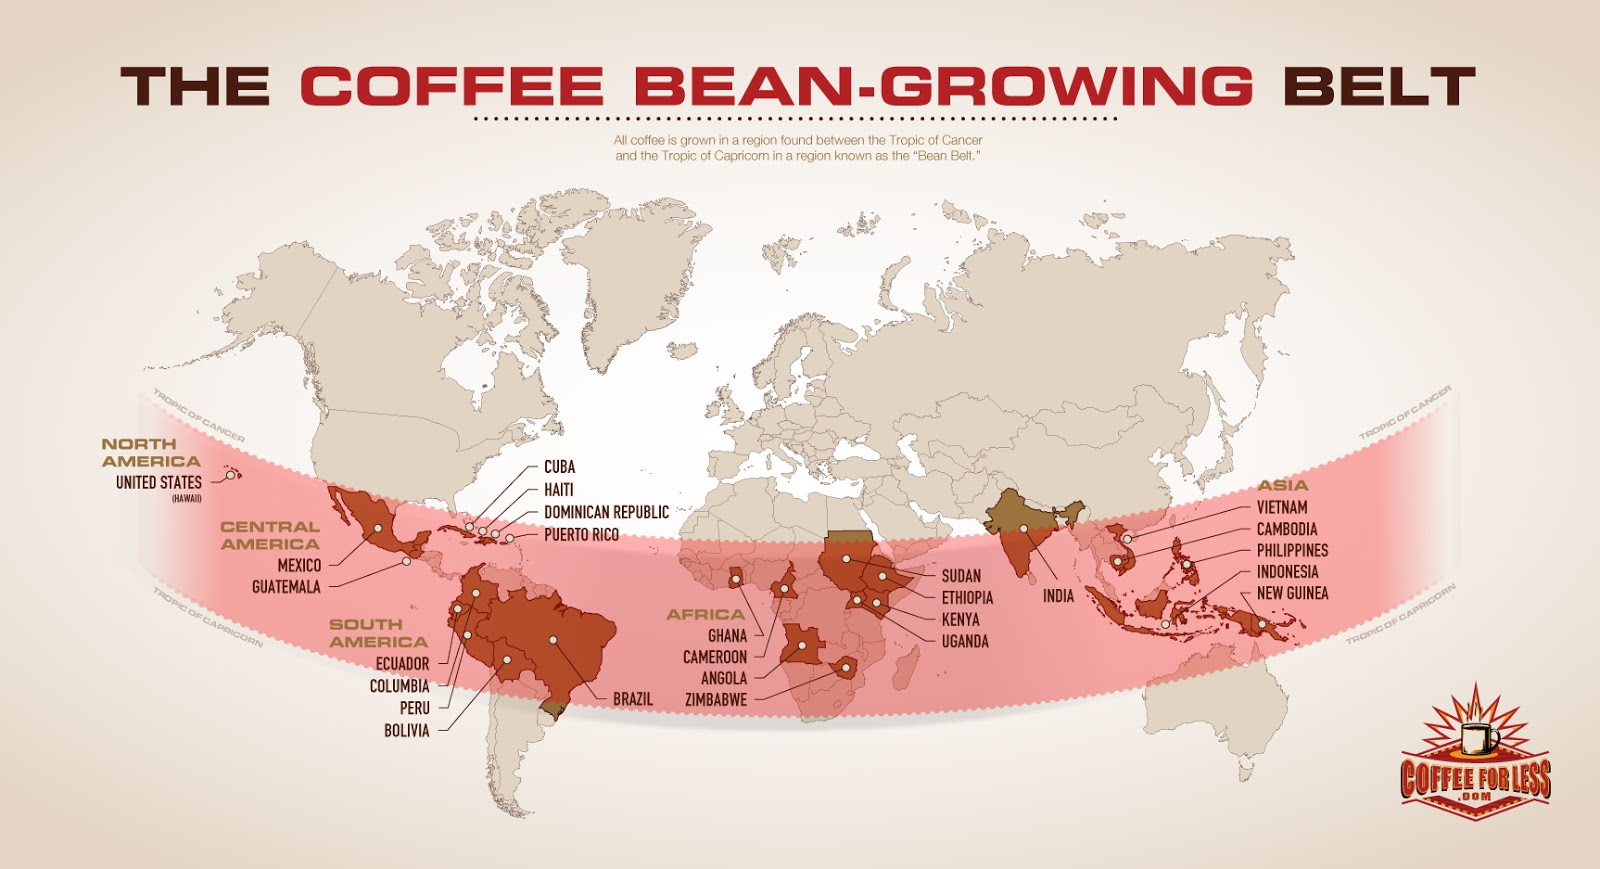 The coffee bean-growing belt